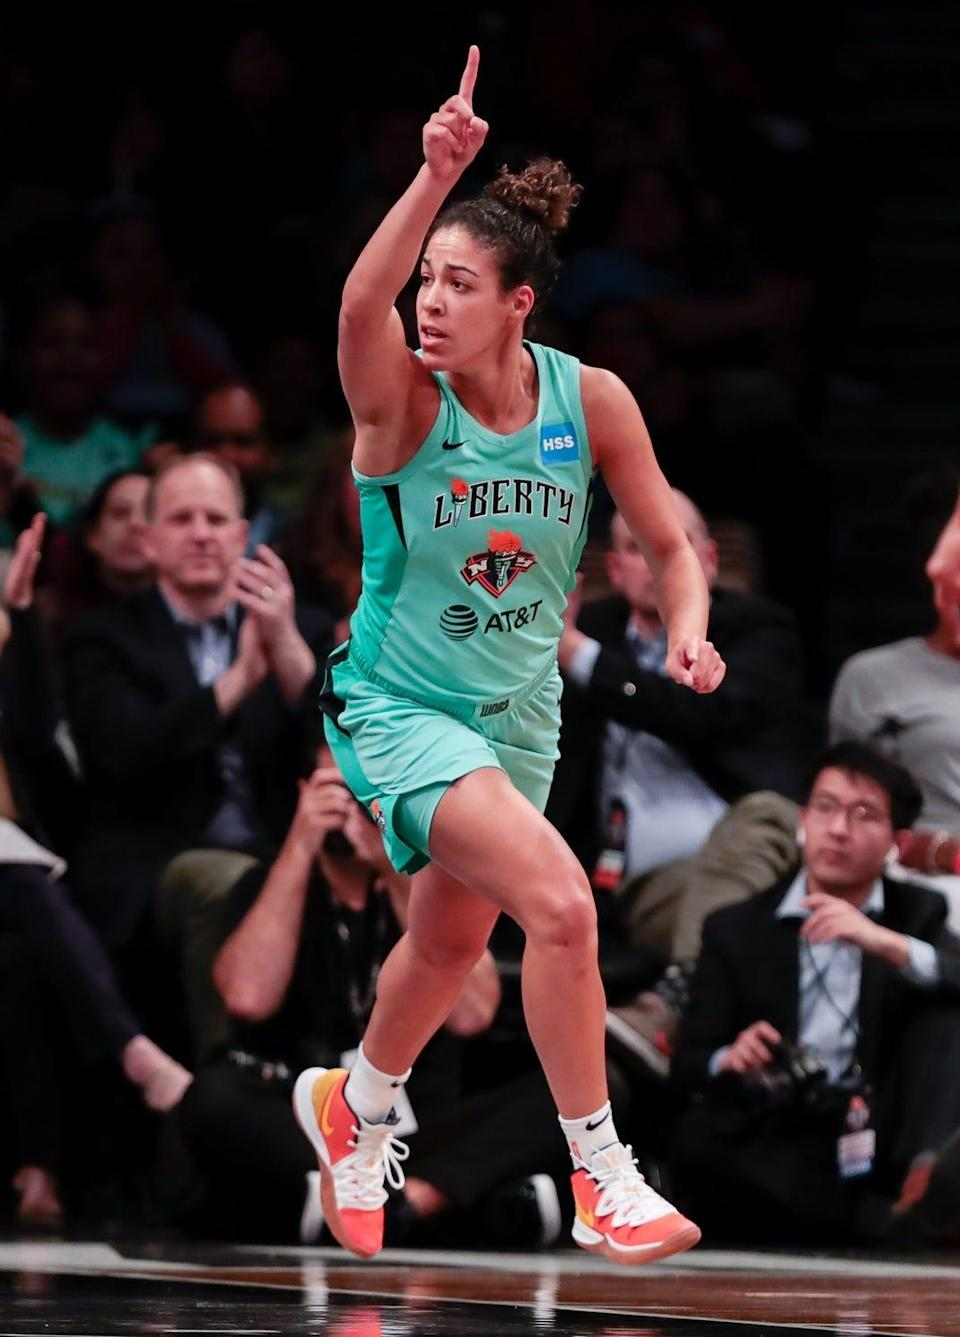 New York Liberty guard Kia Nurse celebrates after hitting a 3-pointer in a 2019 exhibition game.